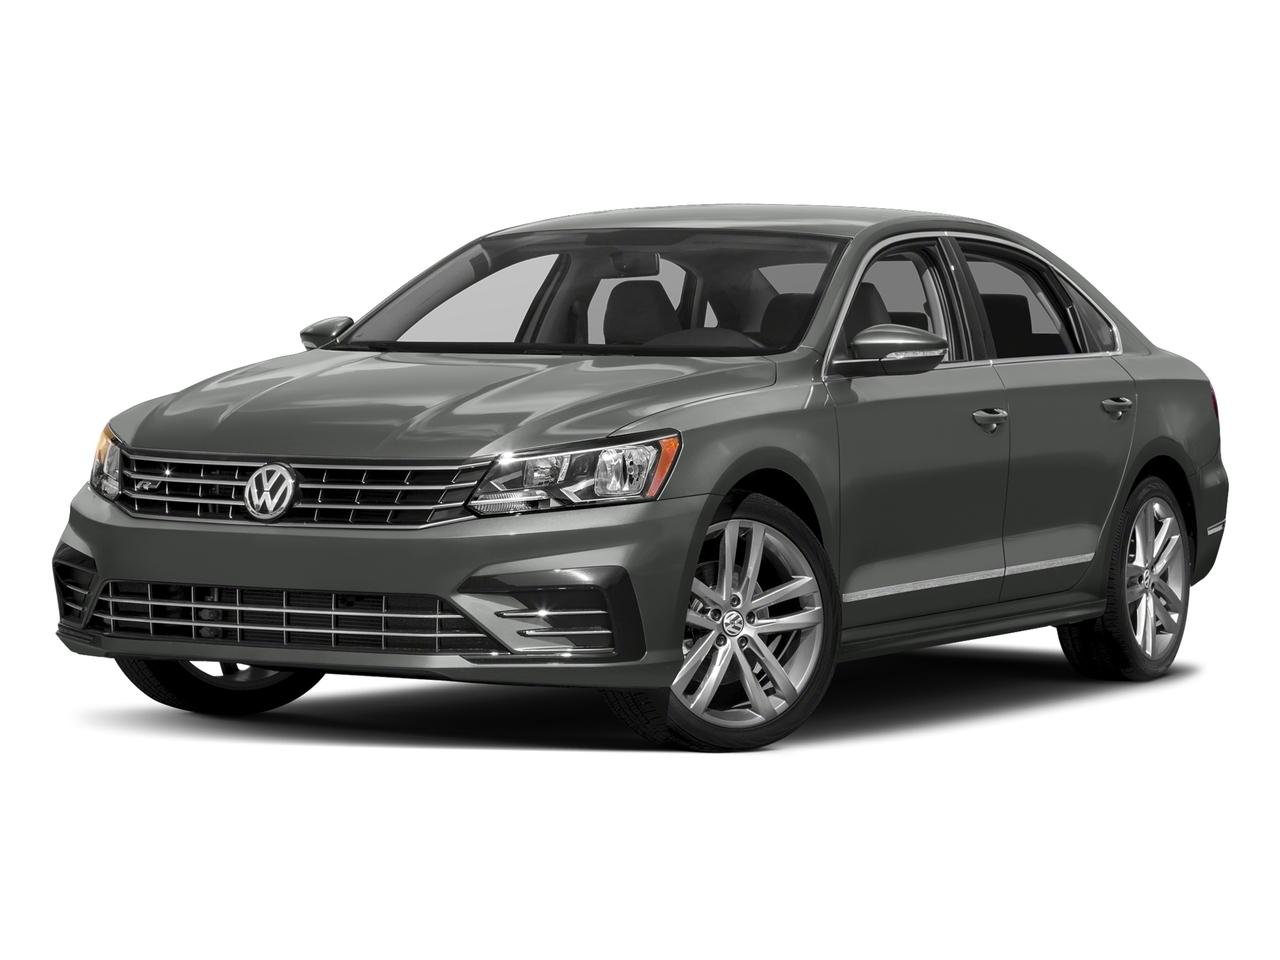 2017 Volkswagen Passat Vehicle Photo in Pleasanton, CA 94588